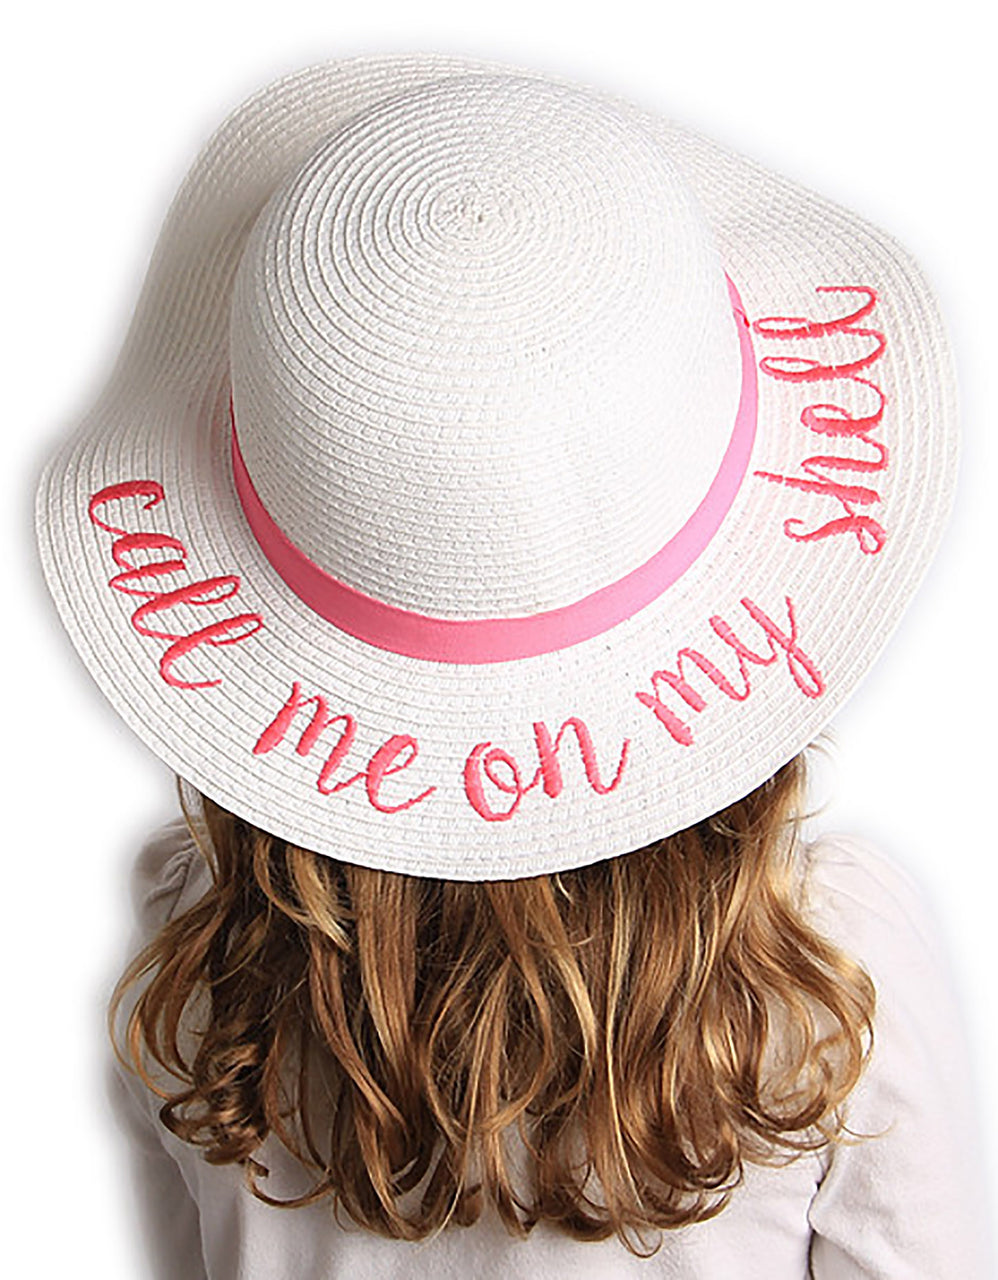 C.C Girls Embroidered Sun Hat - Call Me On My Shell (White)